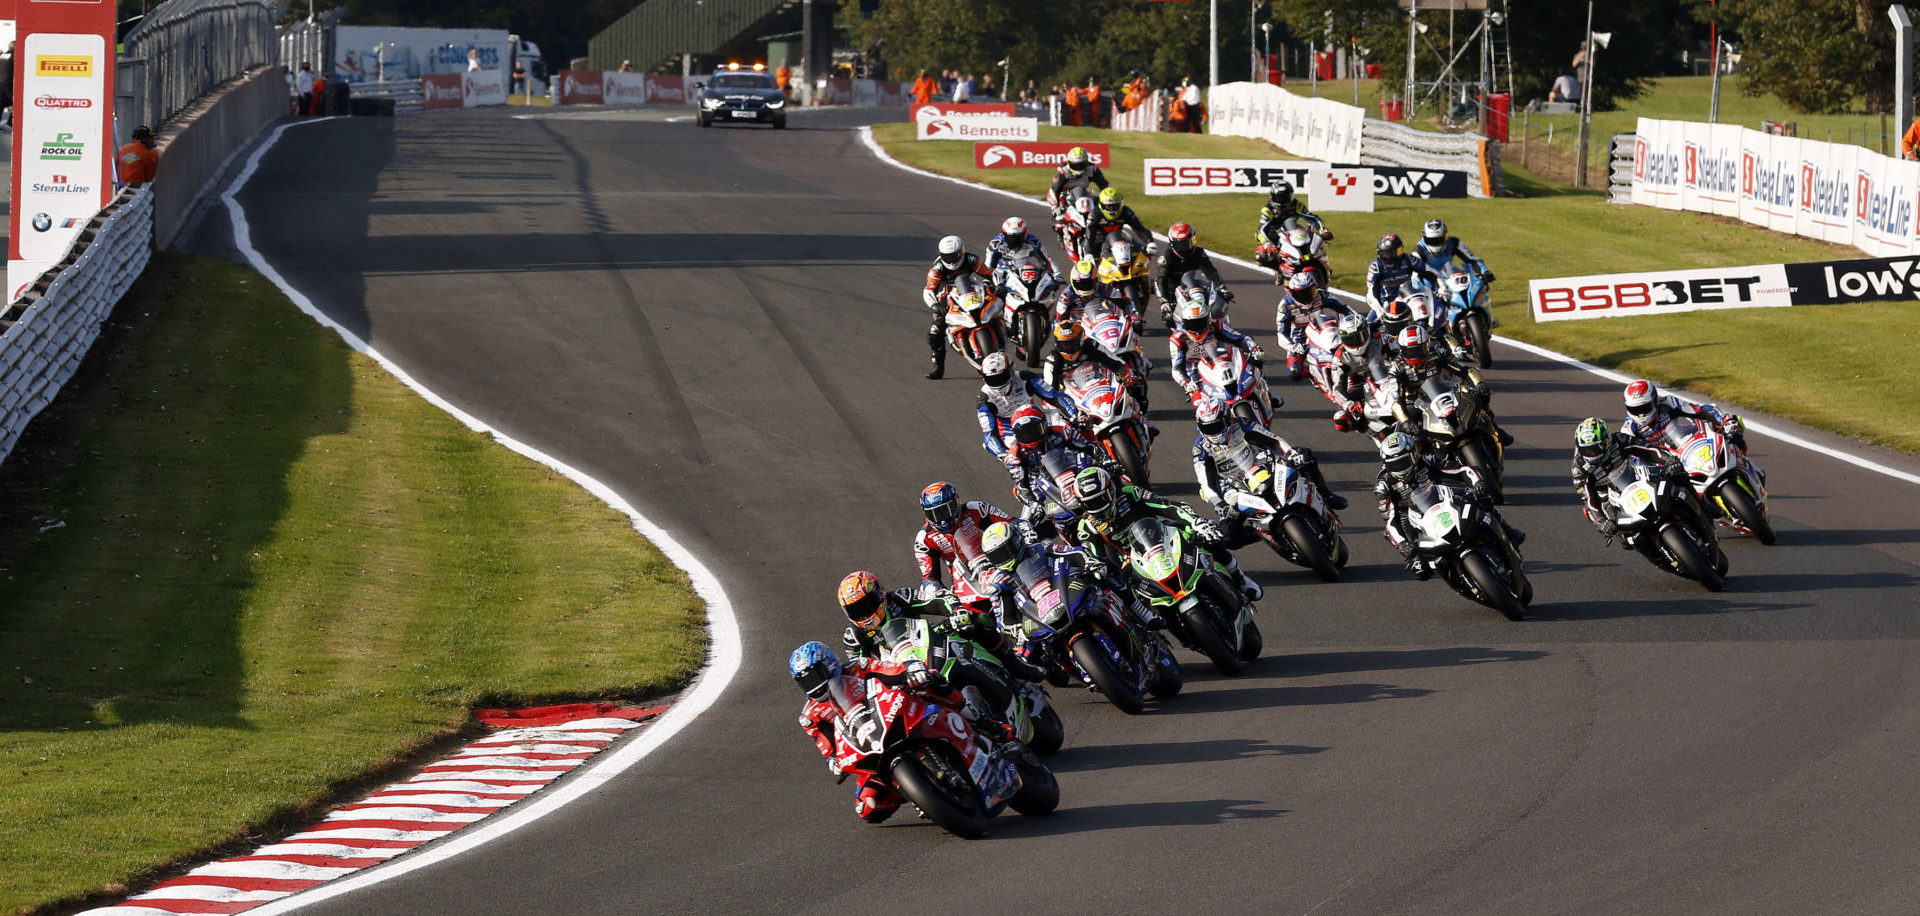 Josh Brookes (25) leads the start of a British Superbike race Sunday at Oulton Park. Photo courtesy MSVR.